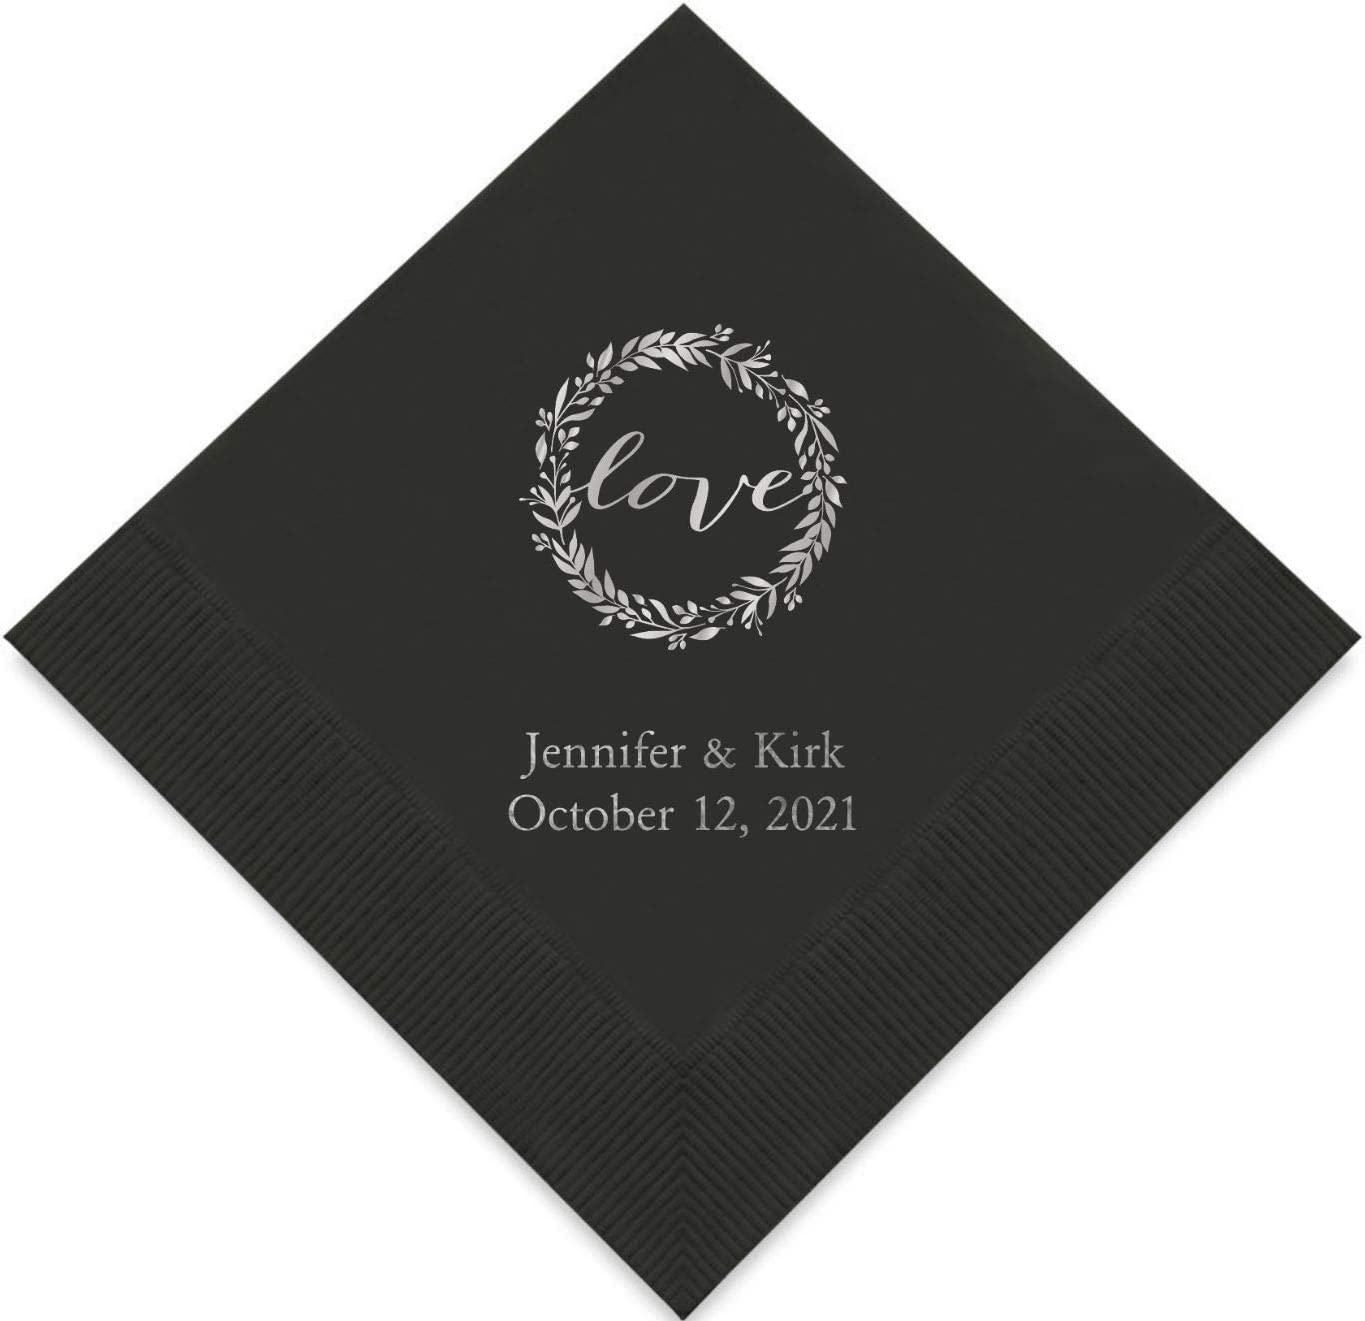 Weddingstar Personalized Printed Paper Napkins 3-Ply 50 Pack - Cocktail Black